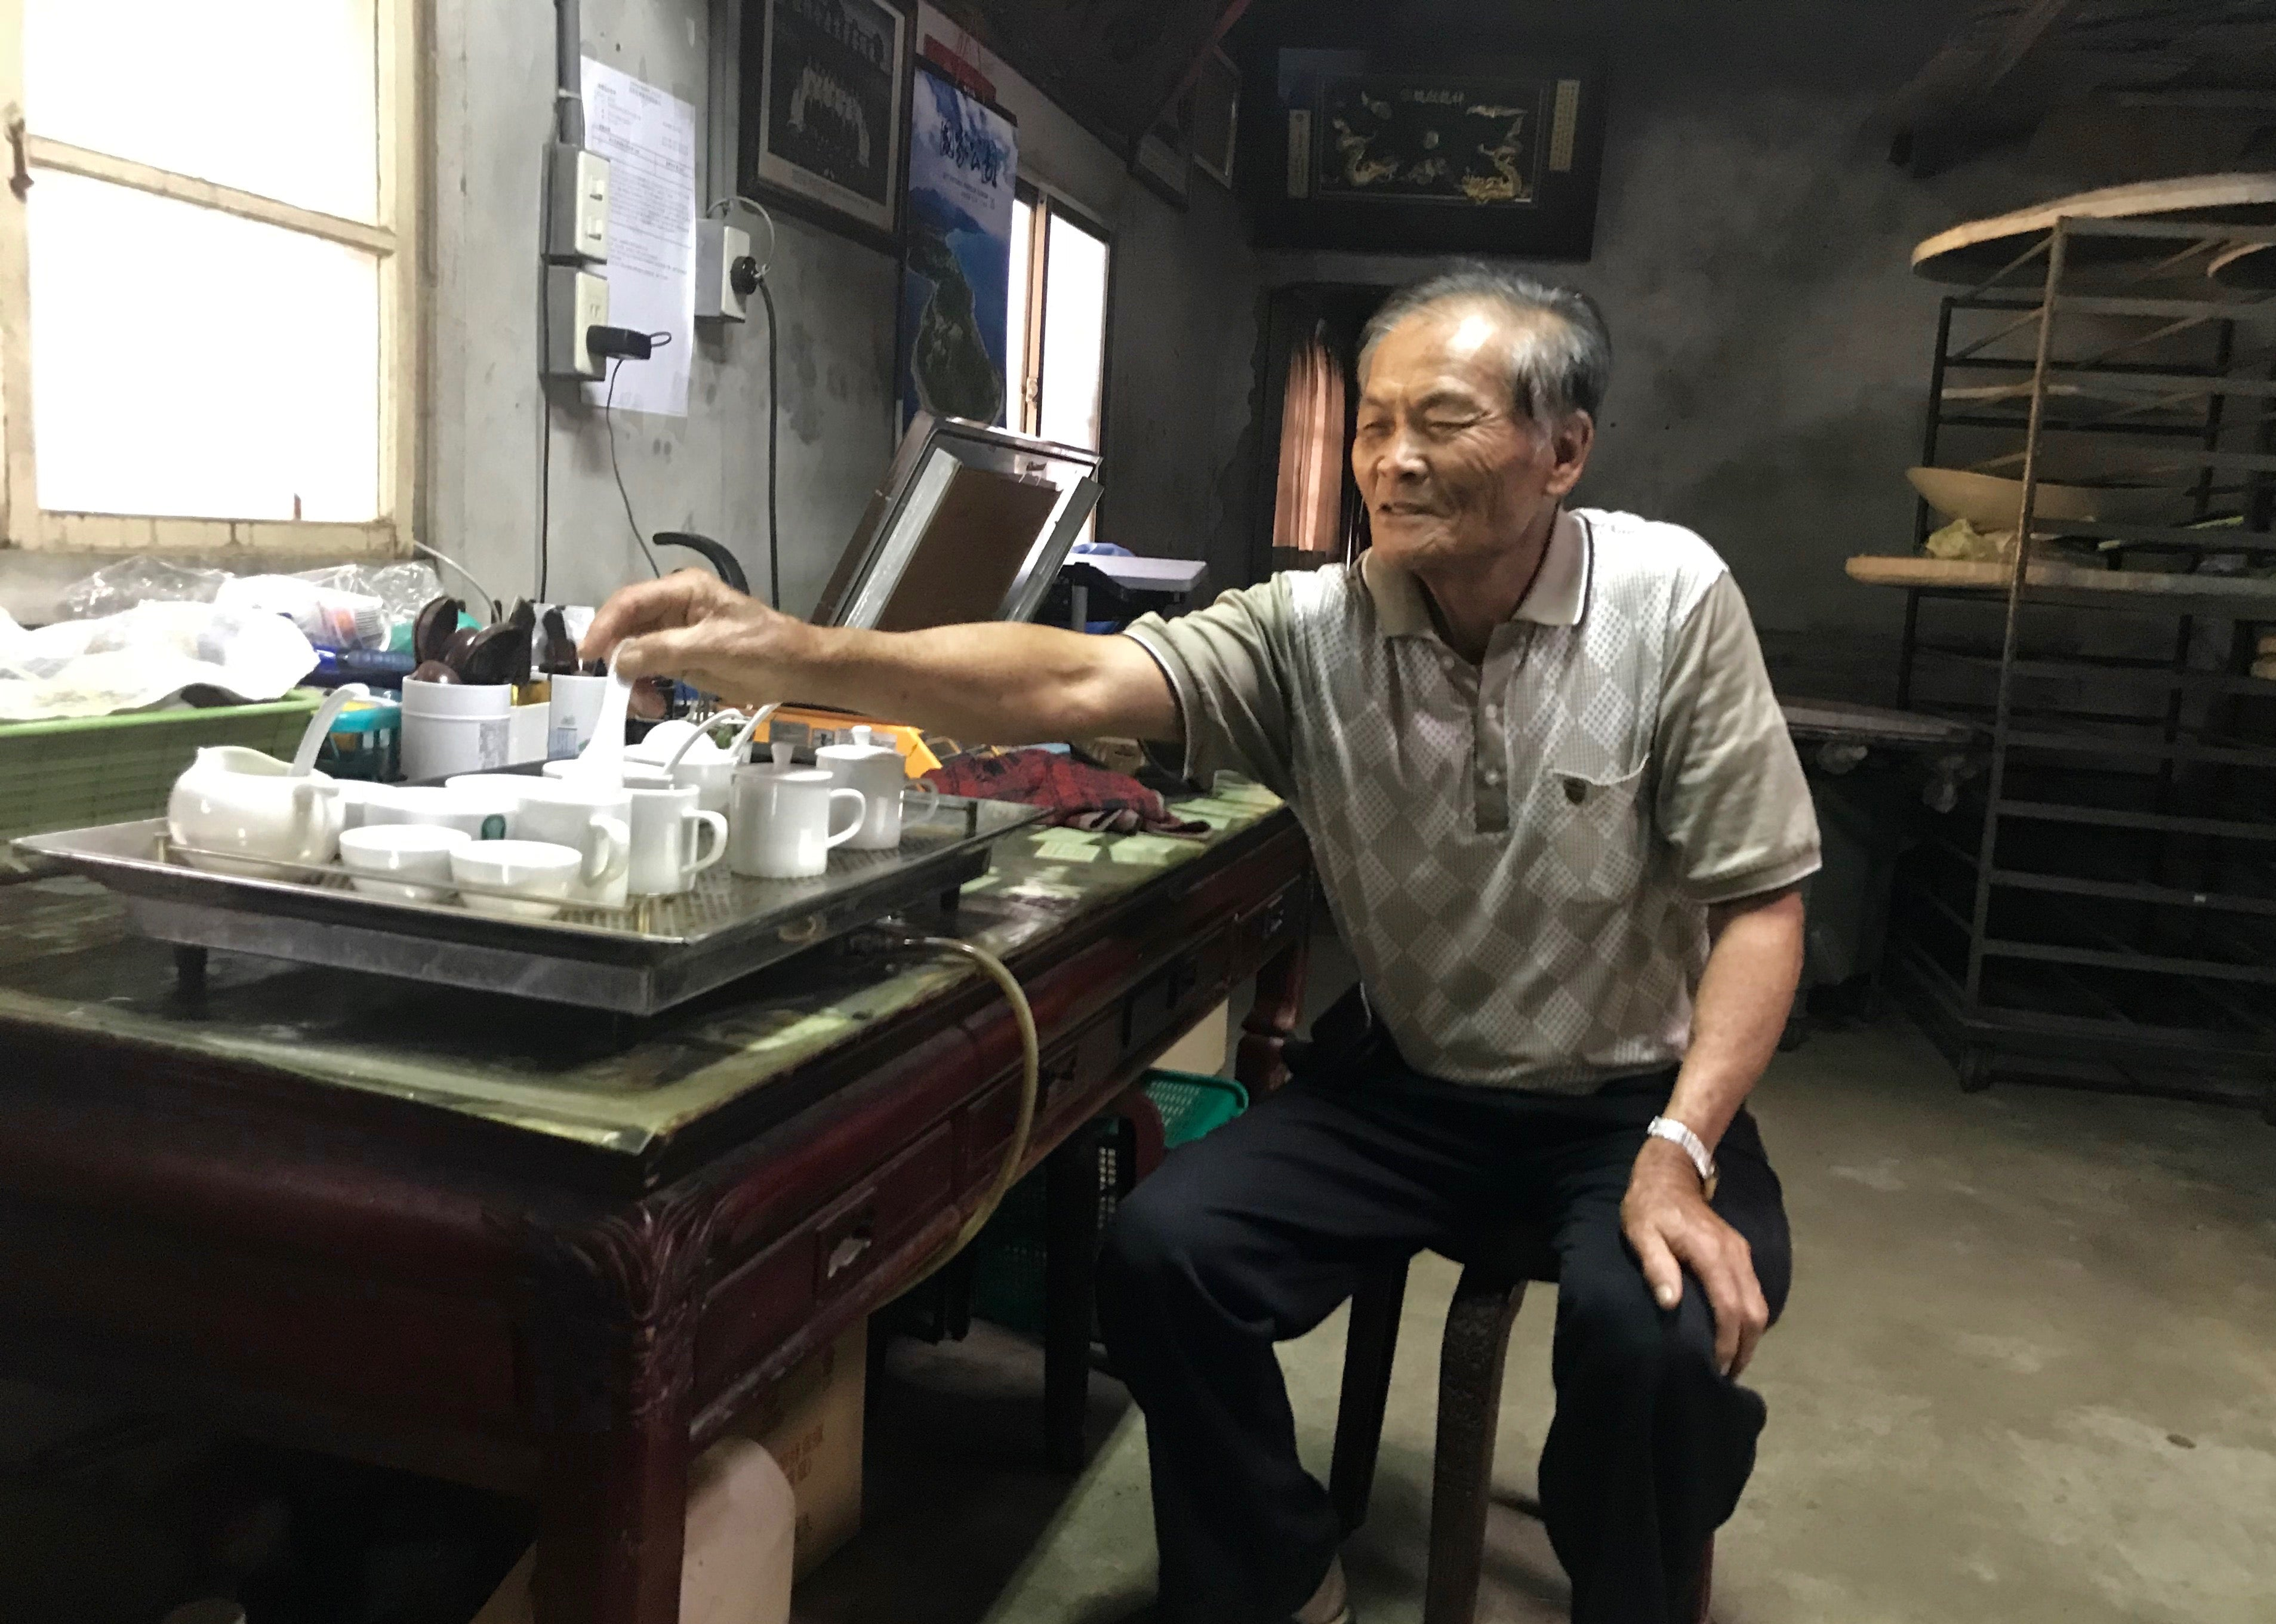 Mr. Su in his workshop tasting the batches of tea that would be delivered to the Farmers' Association the next day for the winter tea competition.